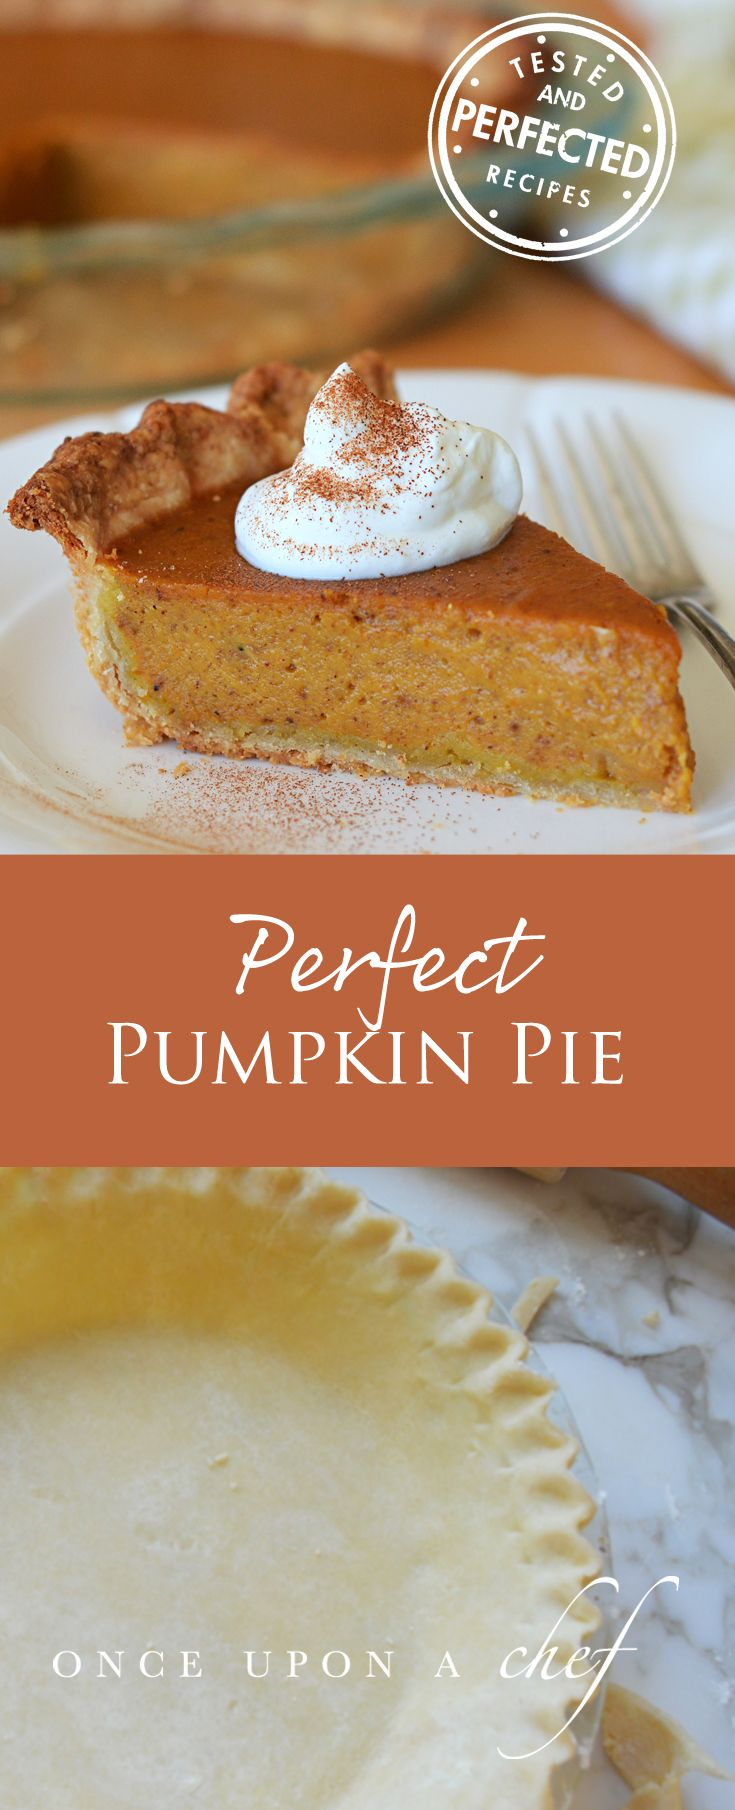 Perfect Pumpkin Pie - Once Upon a Chef